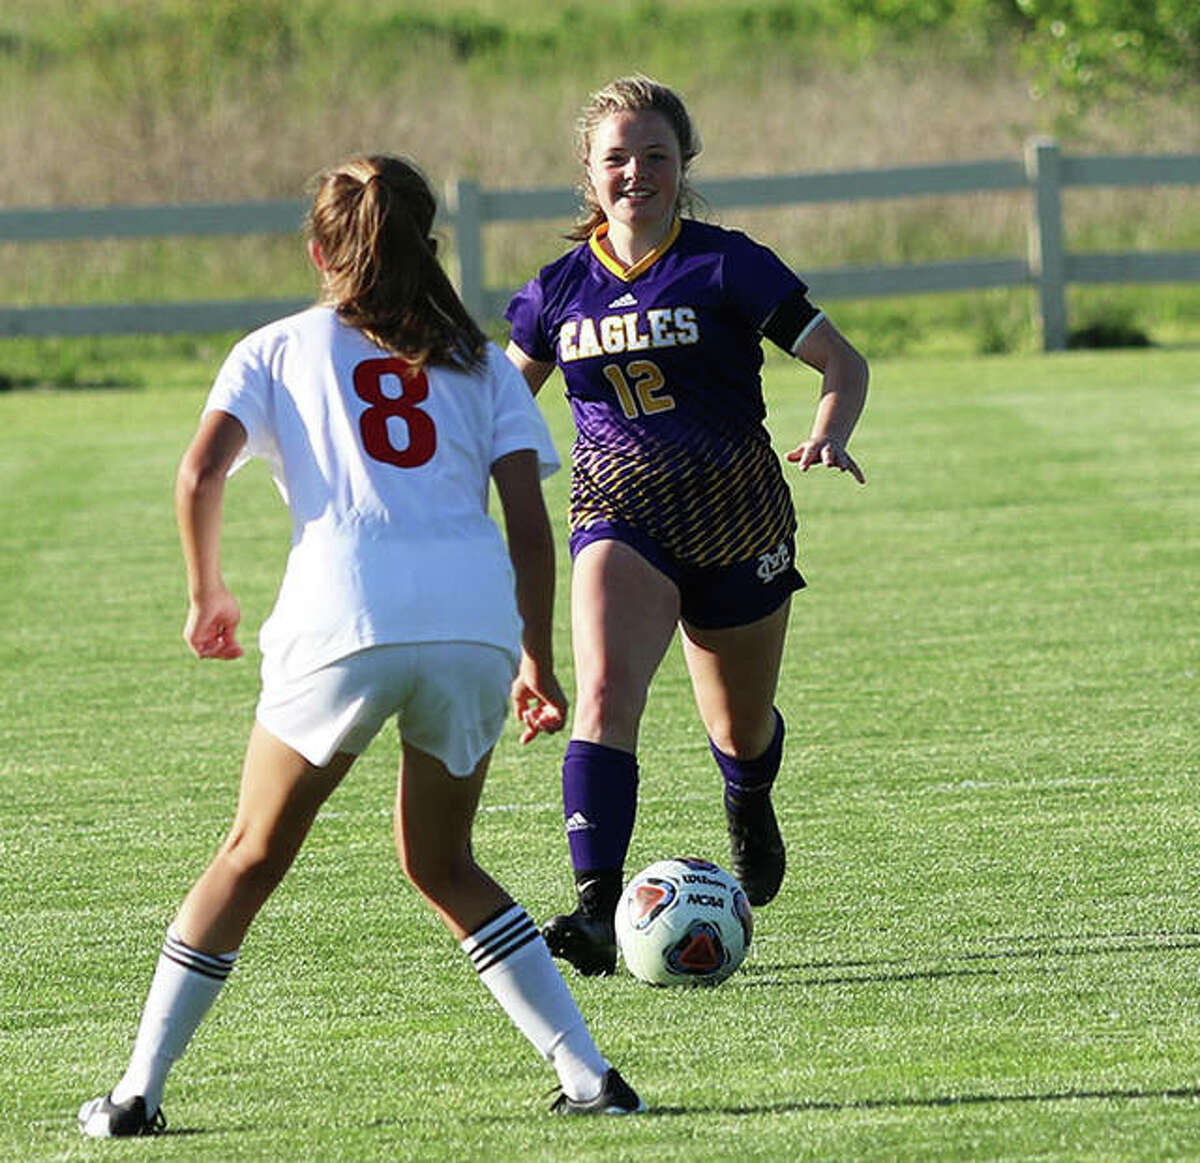 CM's Aubree Wallace (right) considers her options with the ball against Highland's Abby Huelsmann in a May 13 girls soccer match at the Bethalto Sports Complex. Wallace had three goals at home Saturday in a 5-4 loss to Breese Mater Dei.